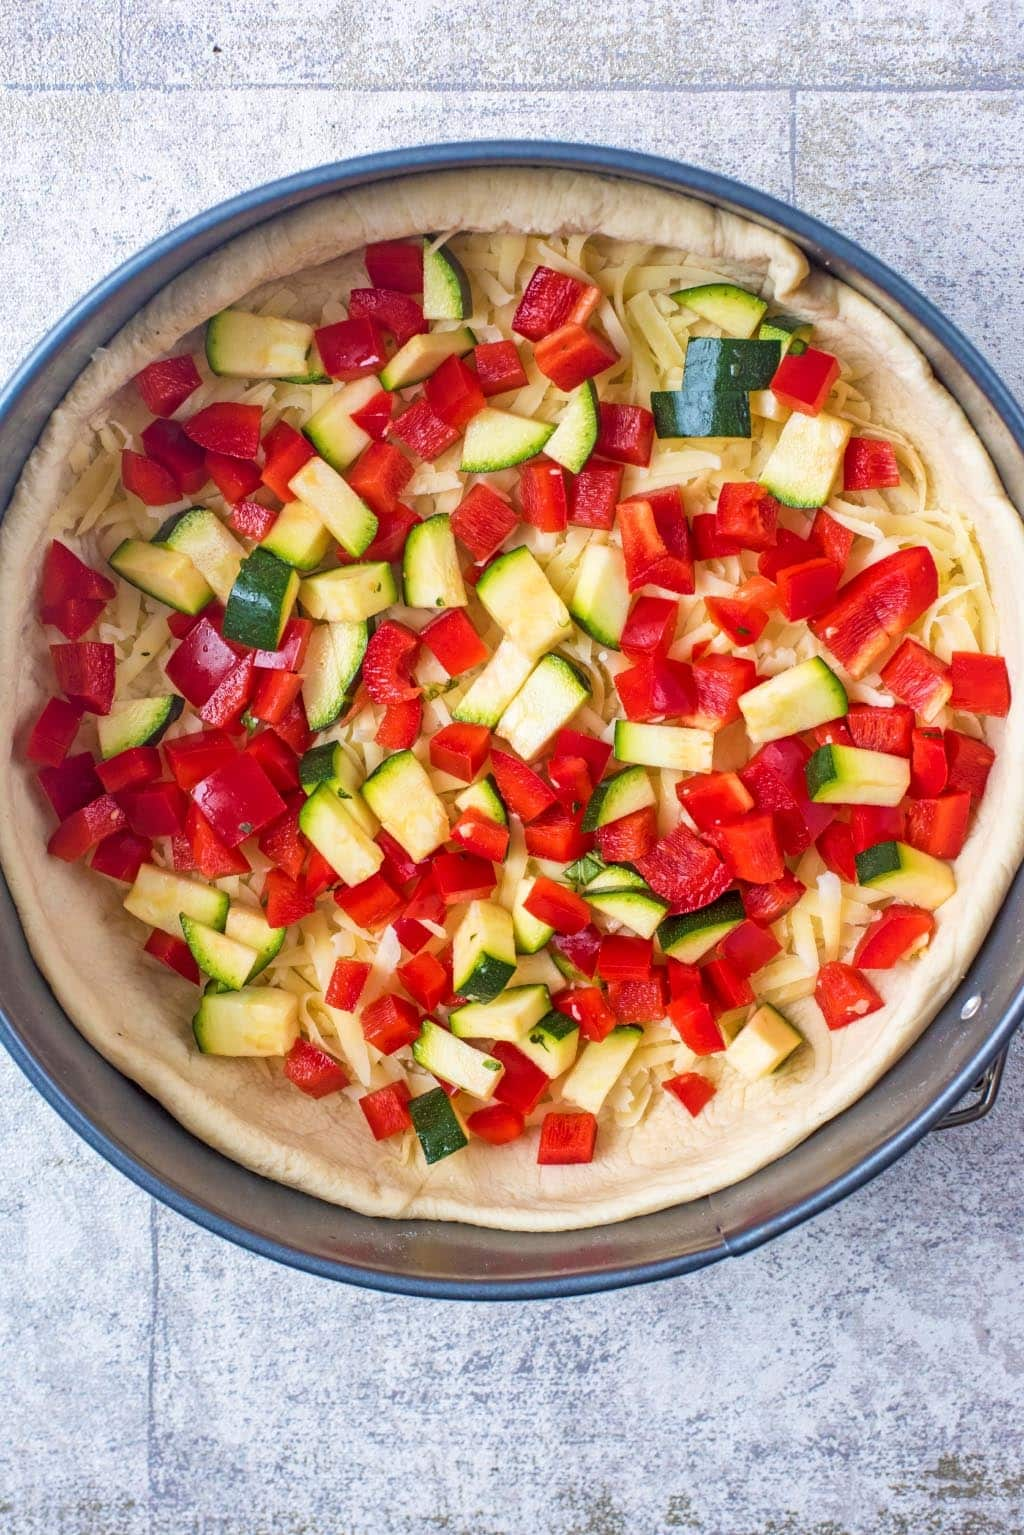 Deep Dish Pizza tin with pizza dough, cheese and vegetables